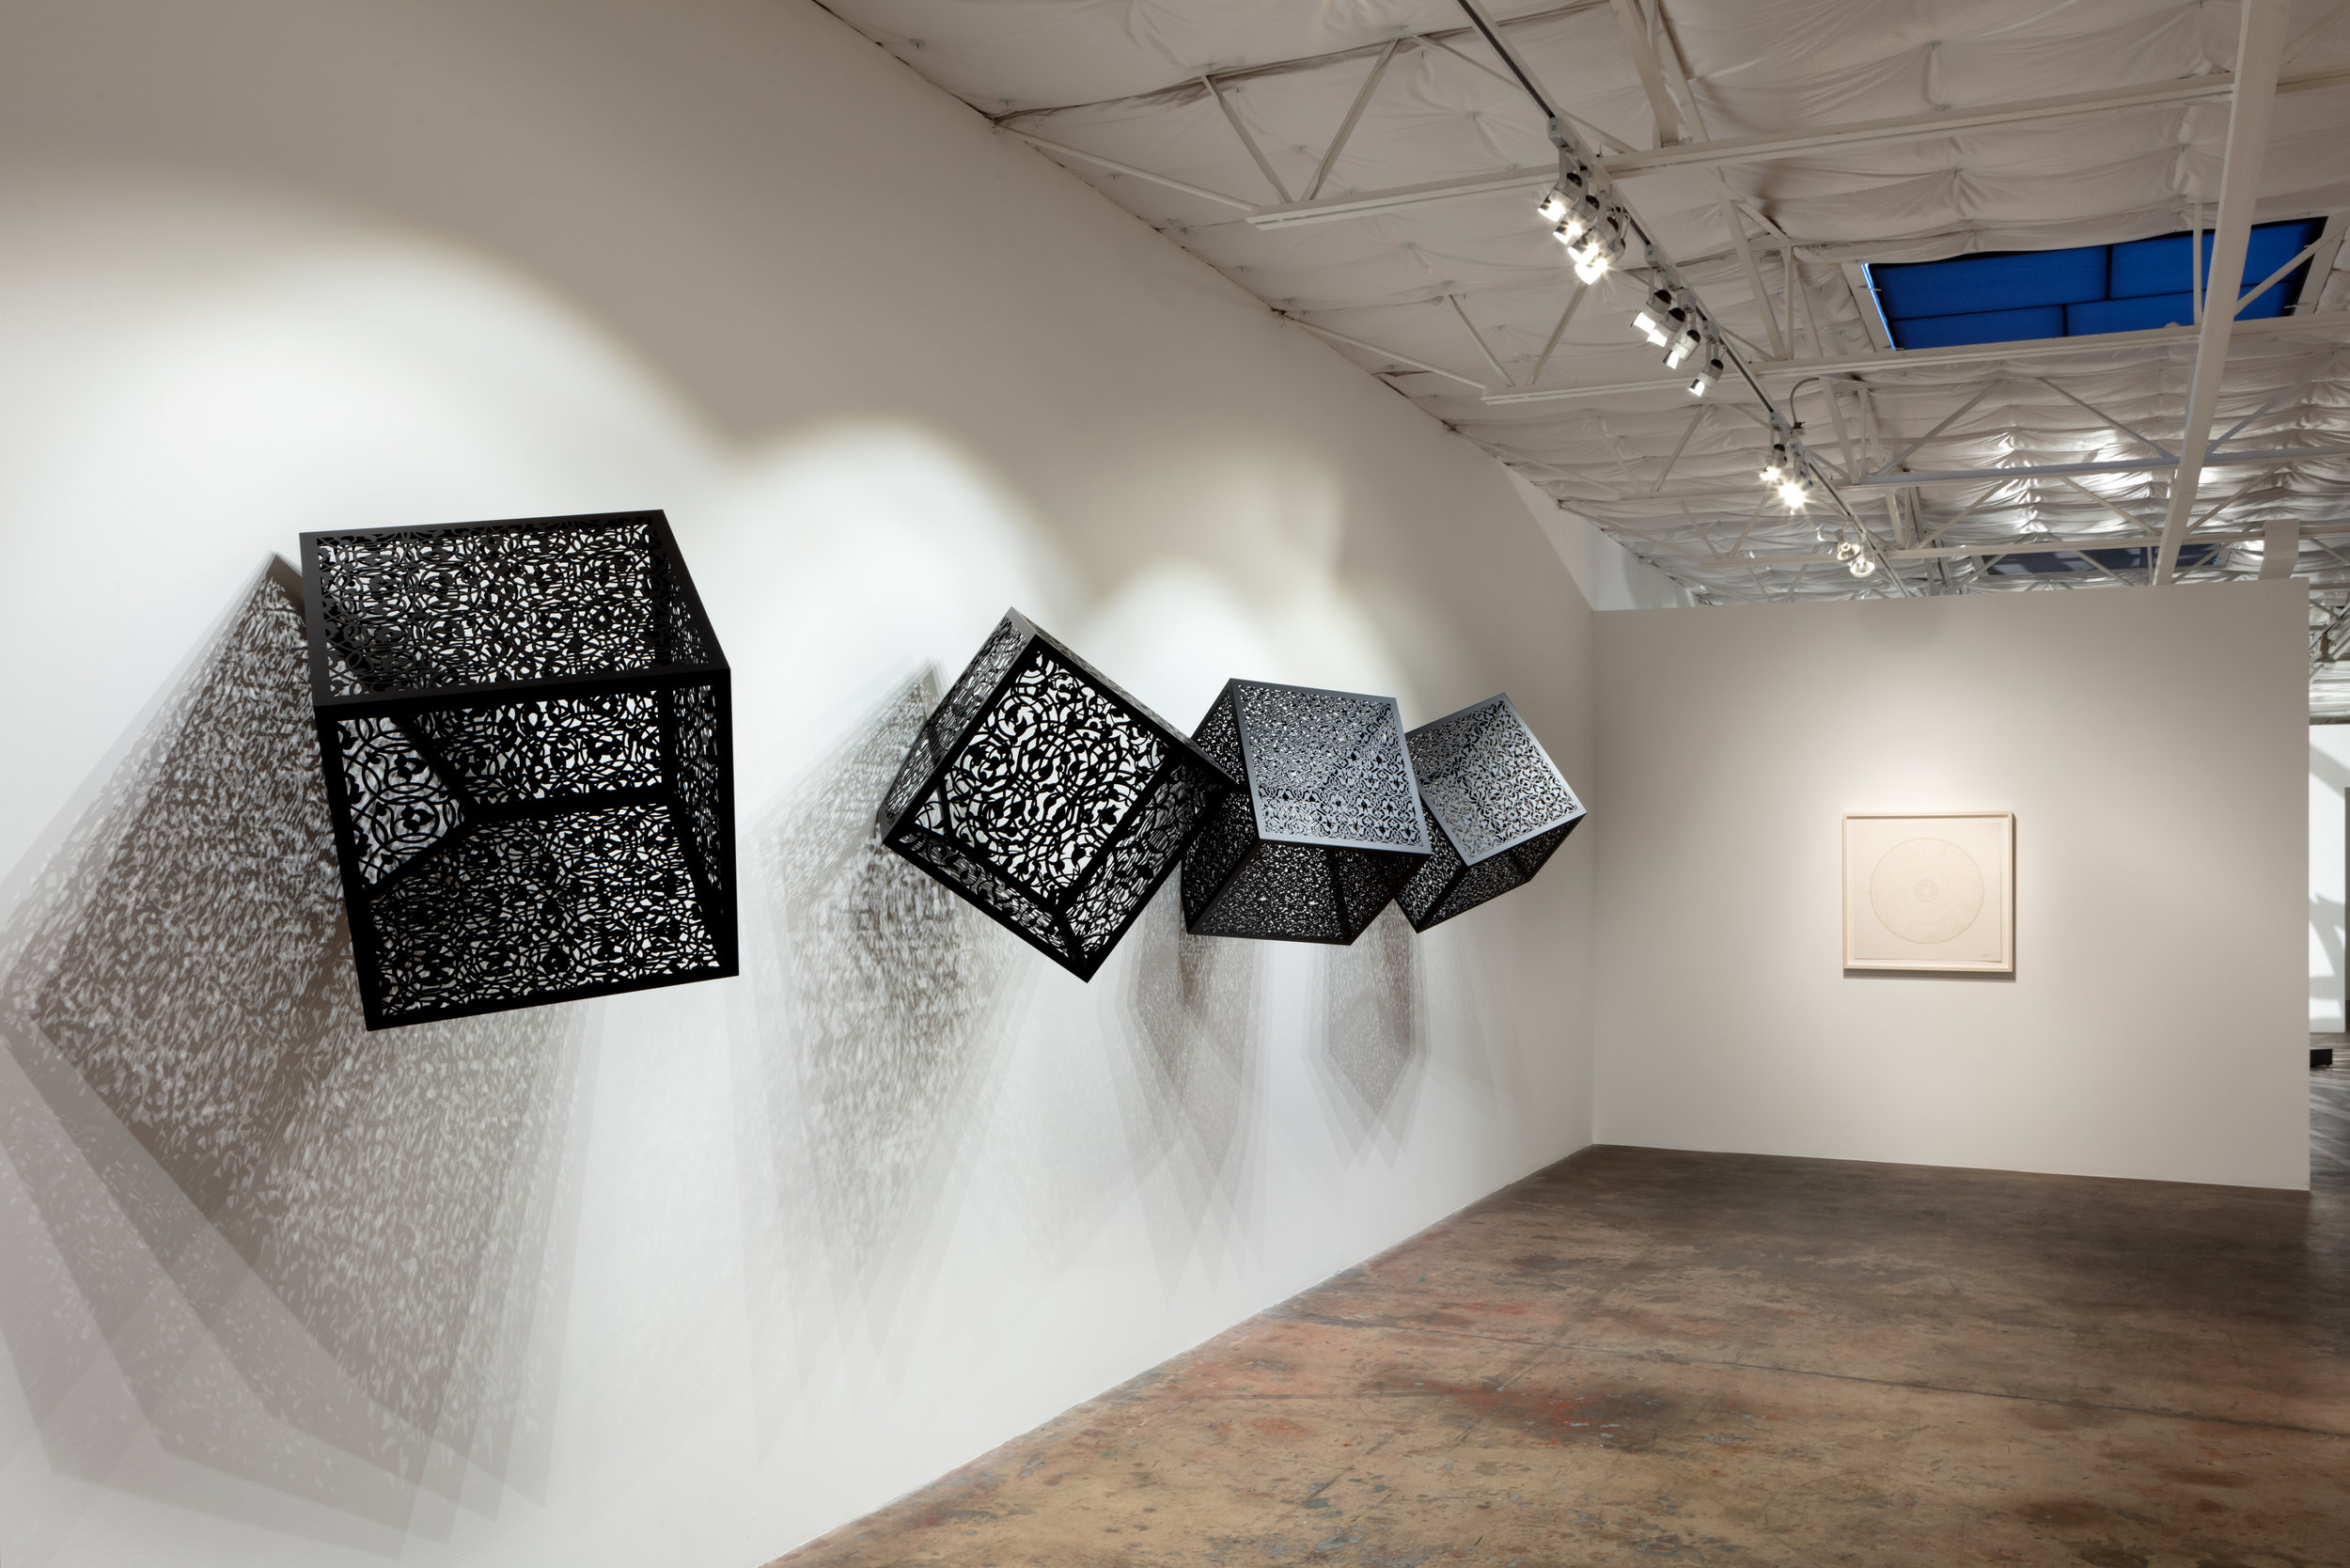 Itinerant Shadows: Bola, Spiral, Caged Flowers, Arches  Installation at Talley Dunn Gallery, Dallas, TX, 2019    Laser-cut Black Lacquered Steel  2' for each cube  Itinerant Shadows Artist Statement